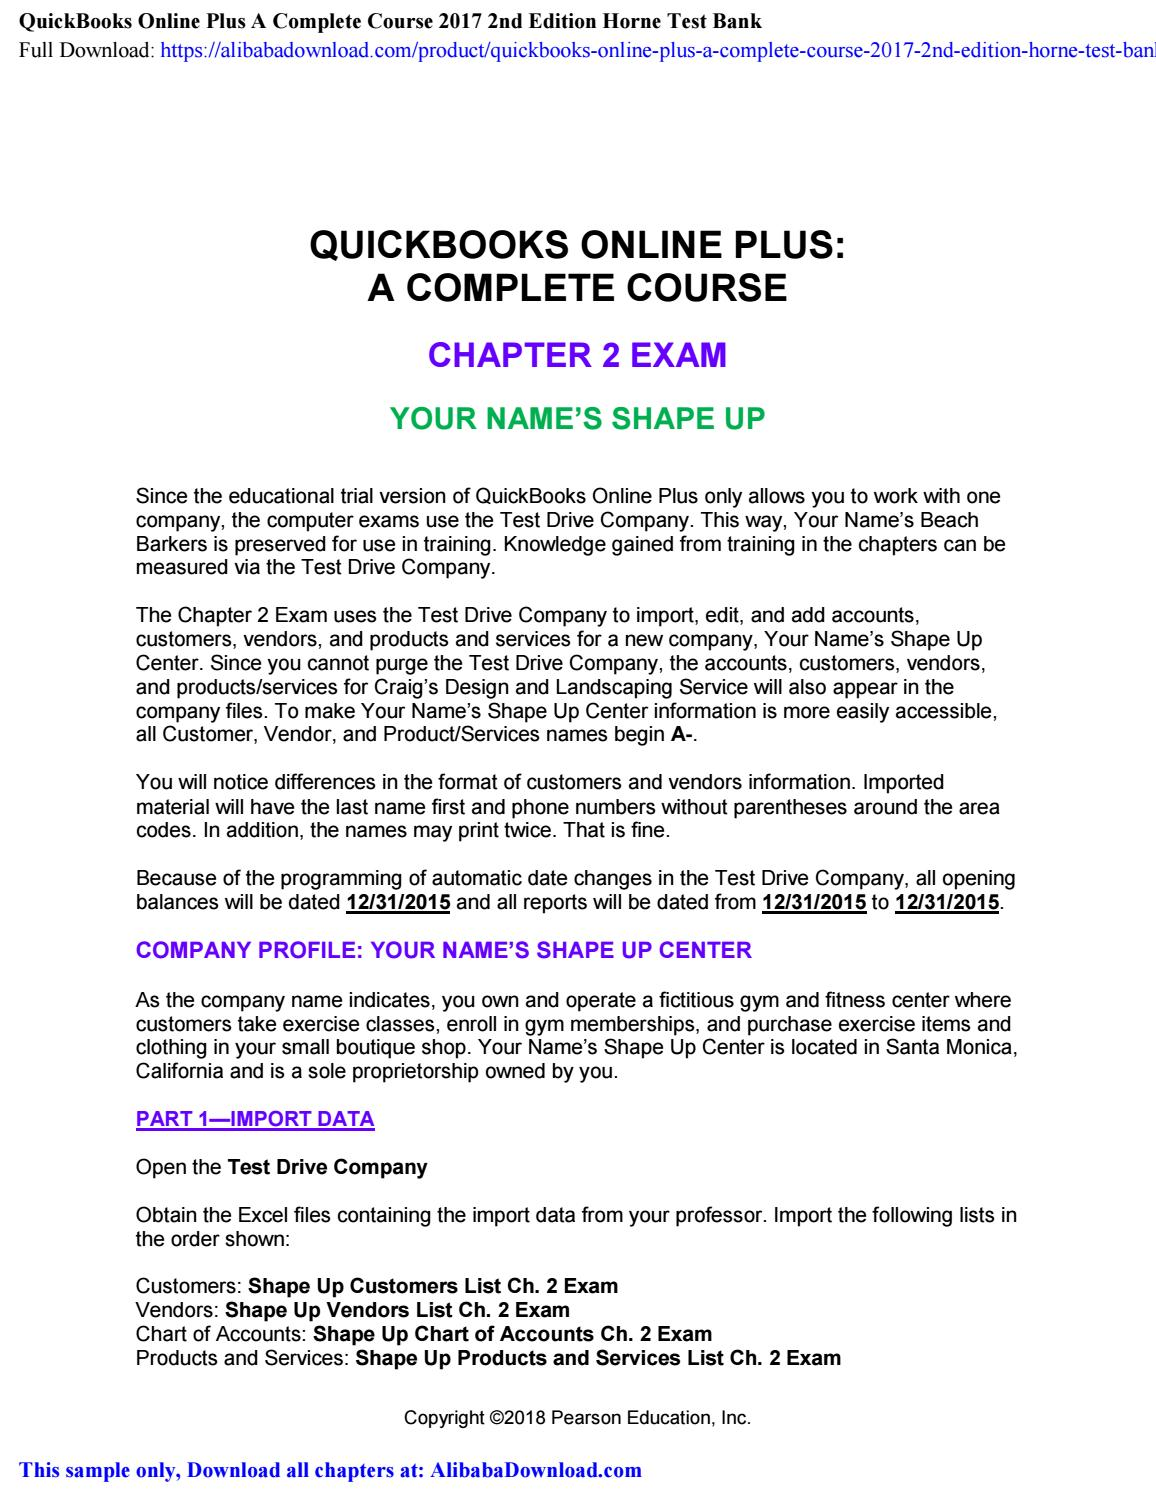 Quickbooks Online Plus A Complete Course 2017 2nd Edition Horne Test Bank By Alibaban332 Issuu